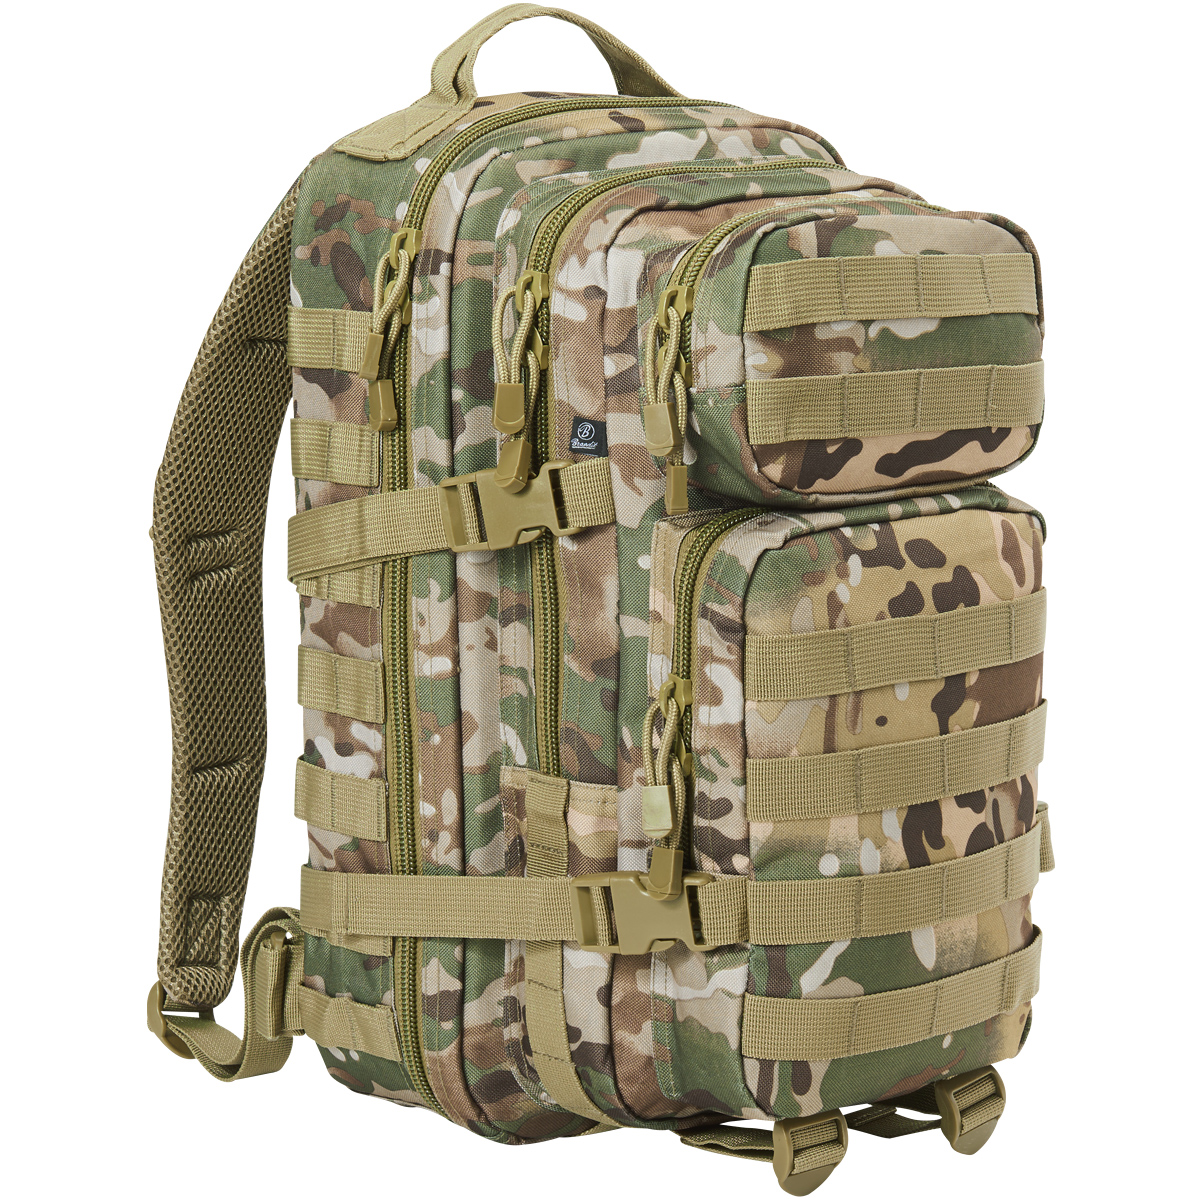 Tactical Camouflage Backpack  70340c025ae53